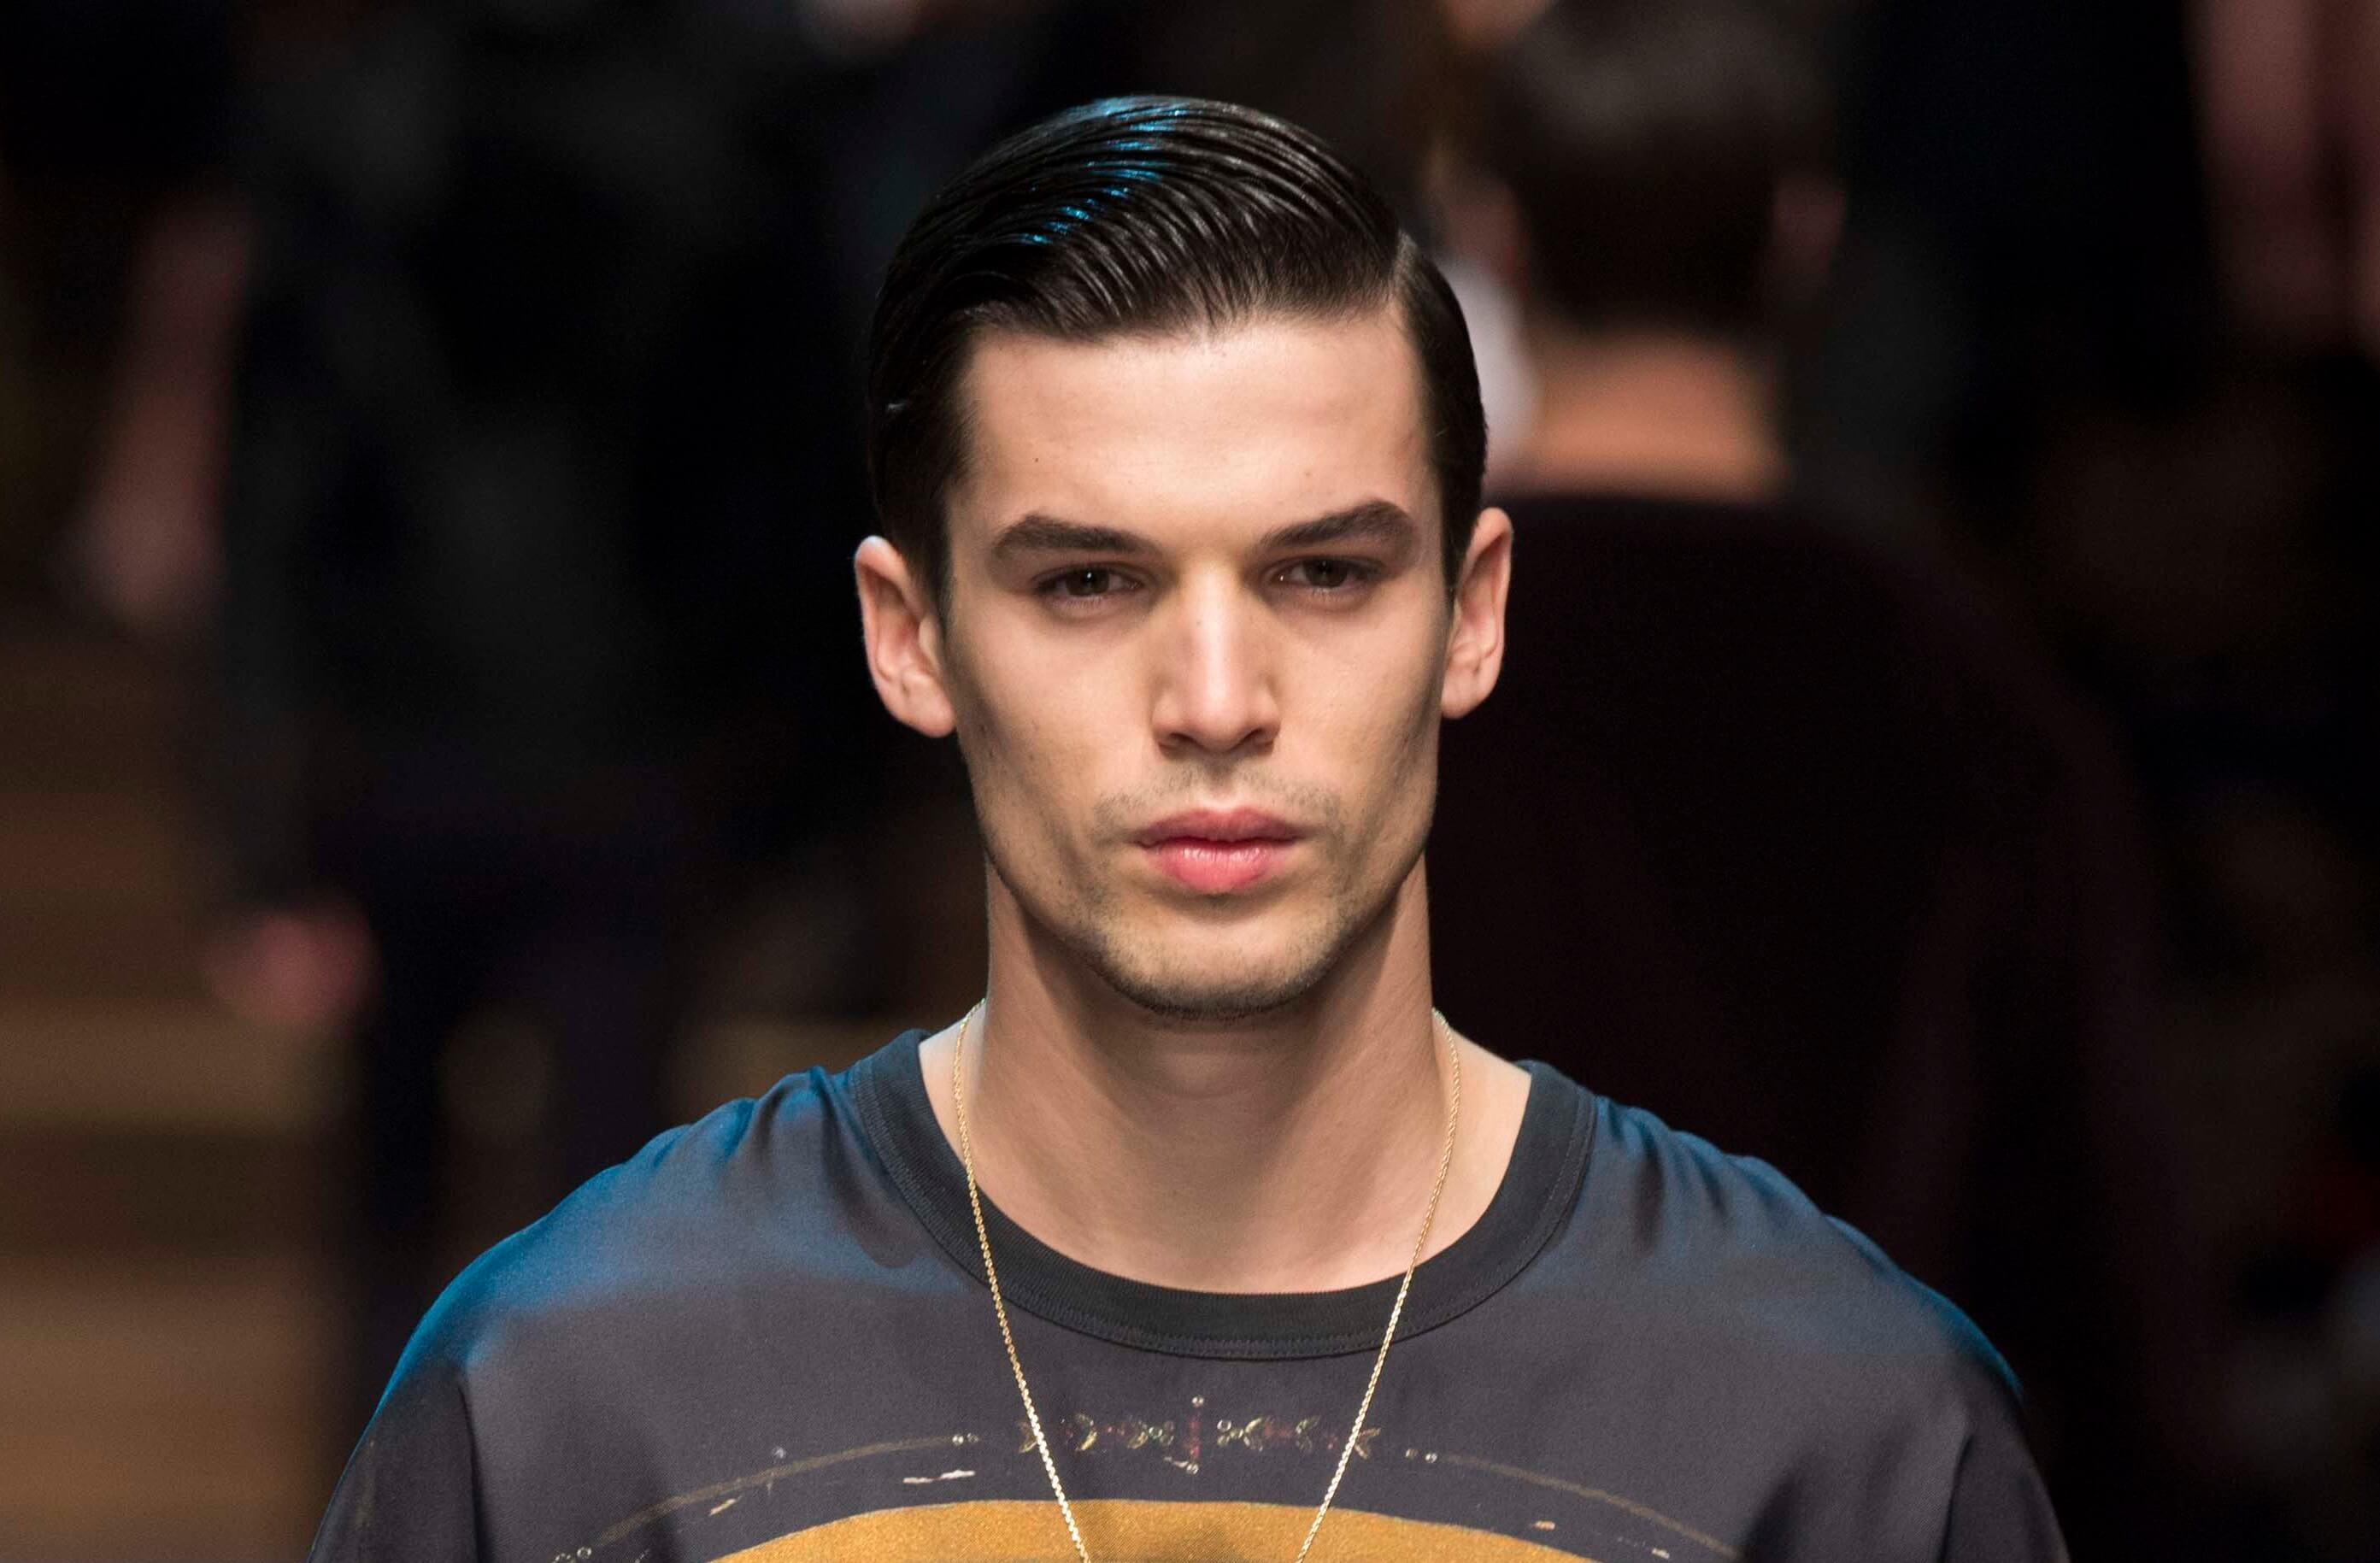 slick comb over cut modern hairstyles for men